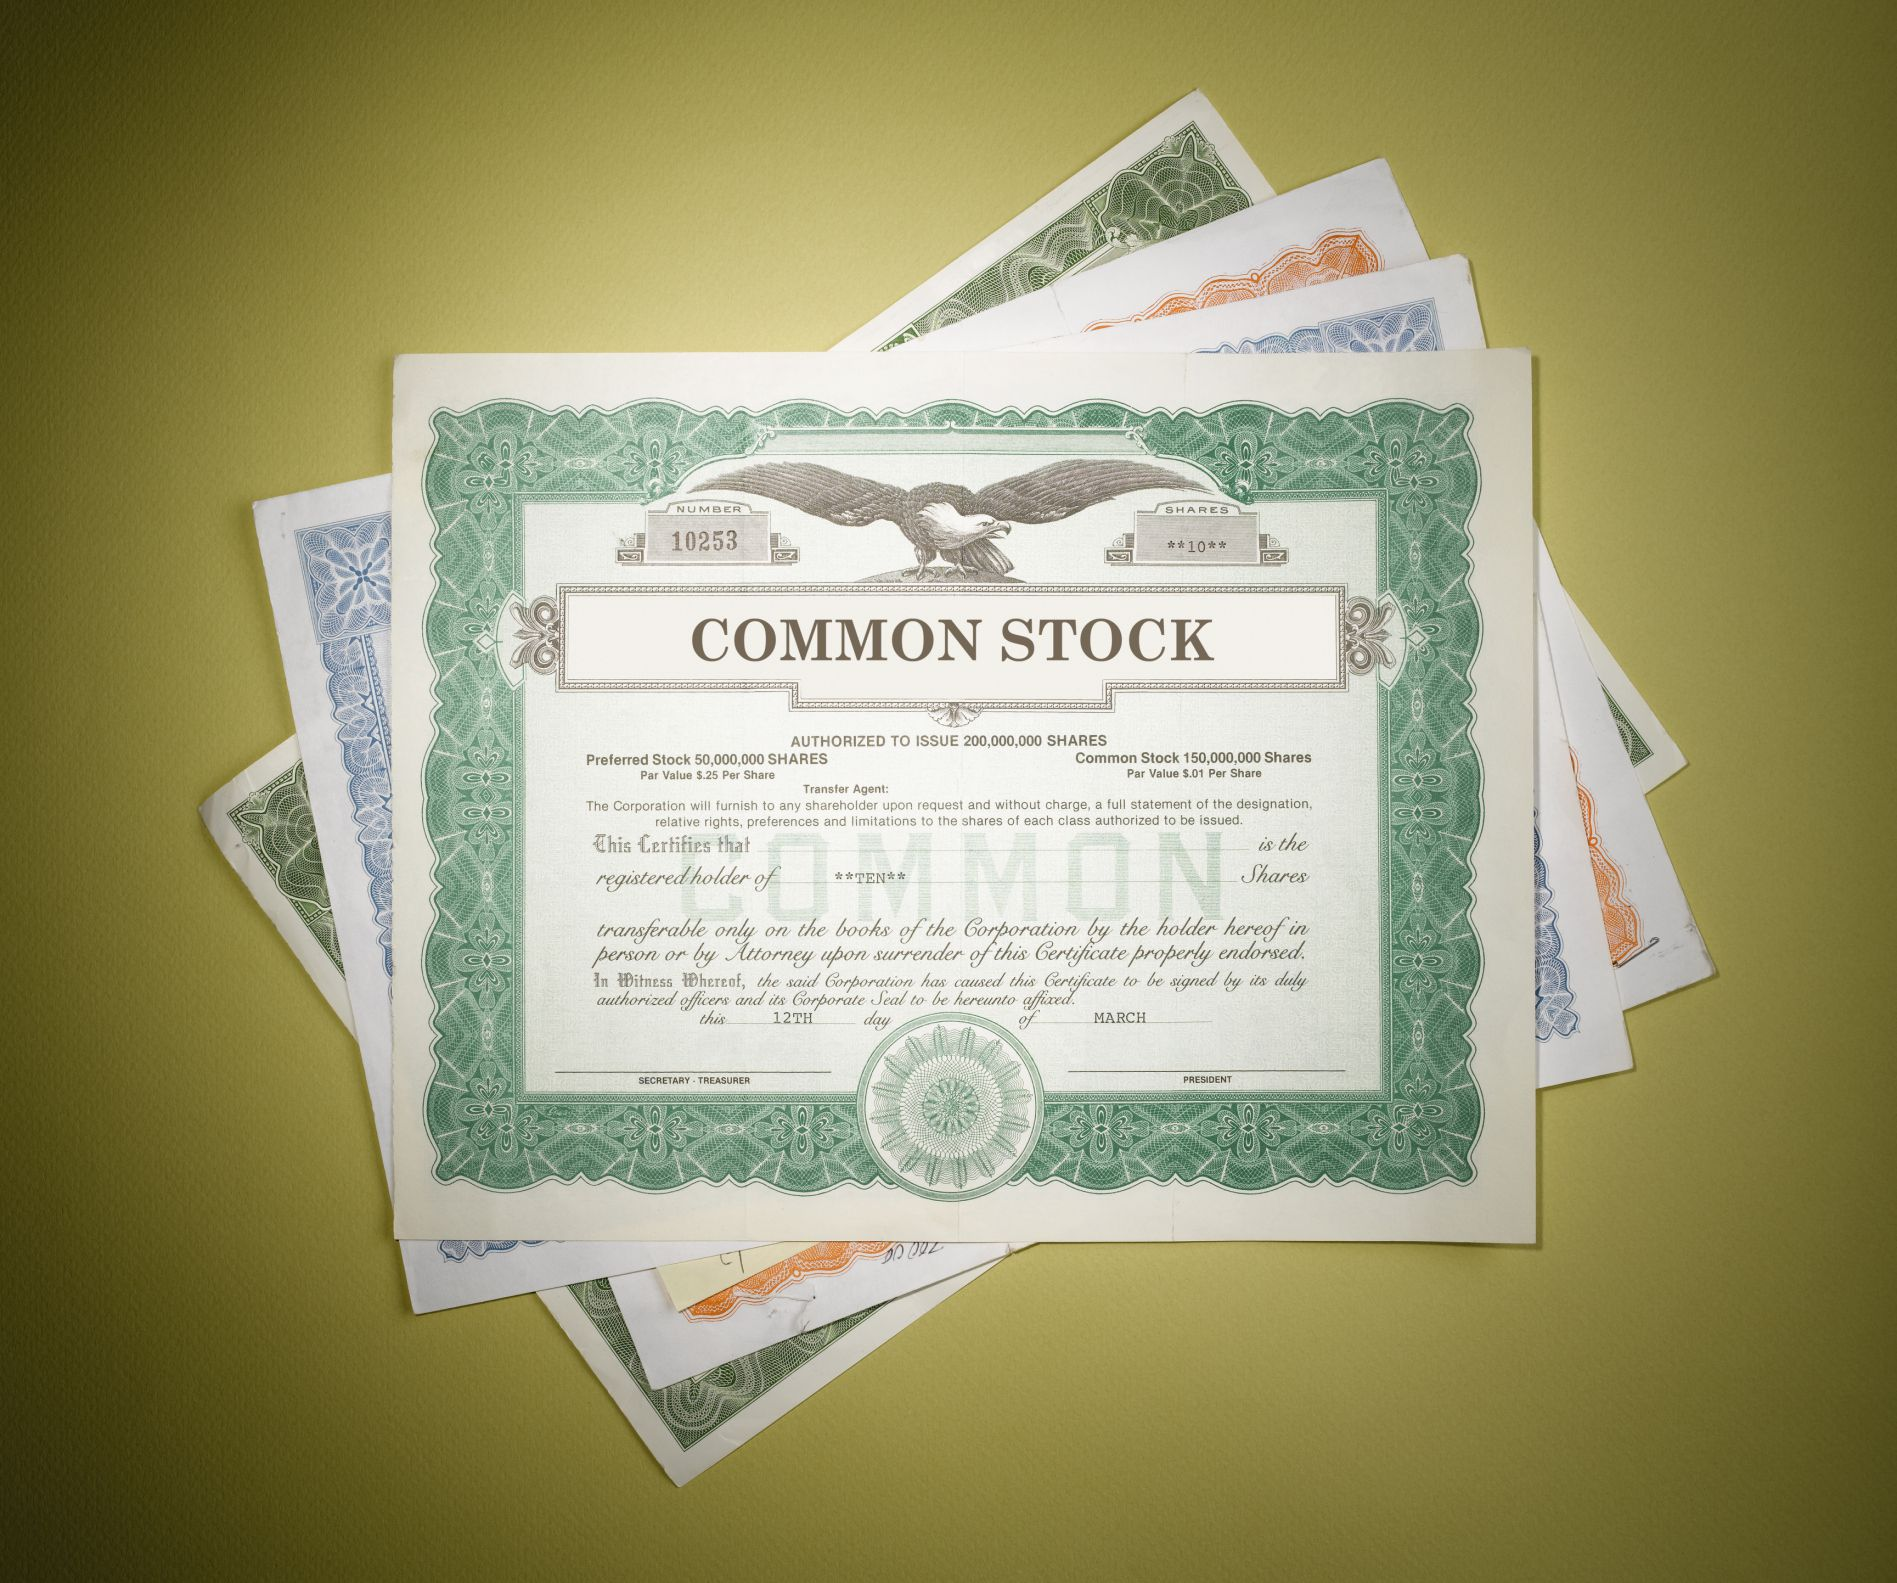 Equity How stock options are taxed | Carta